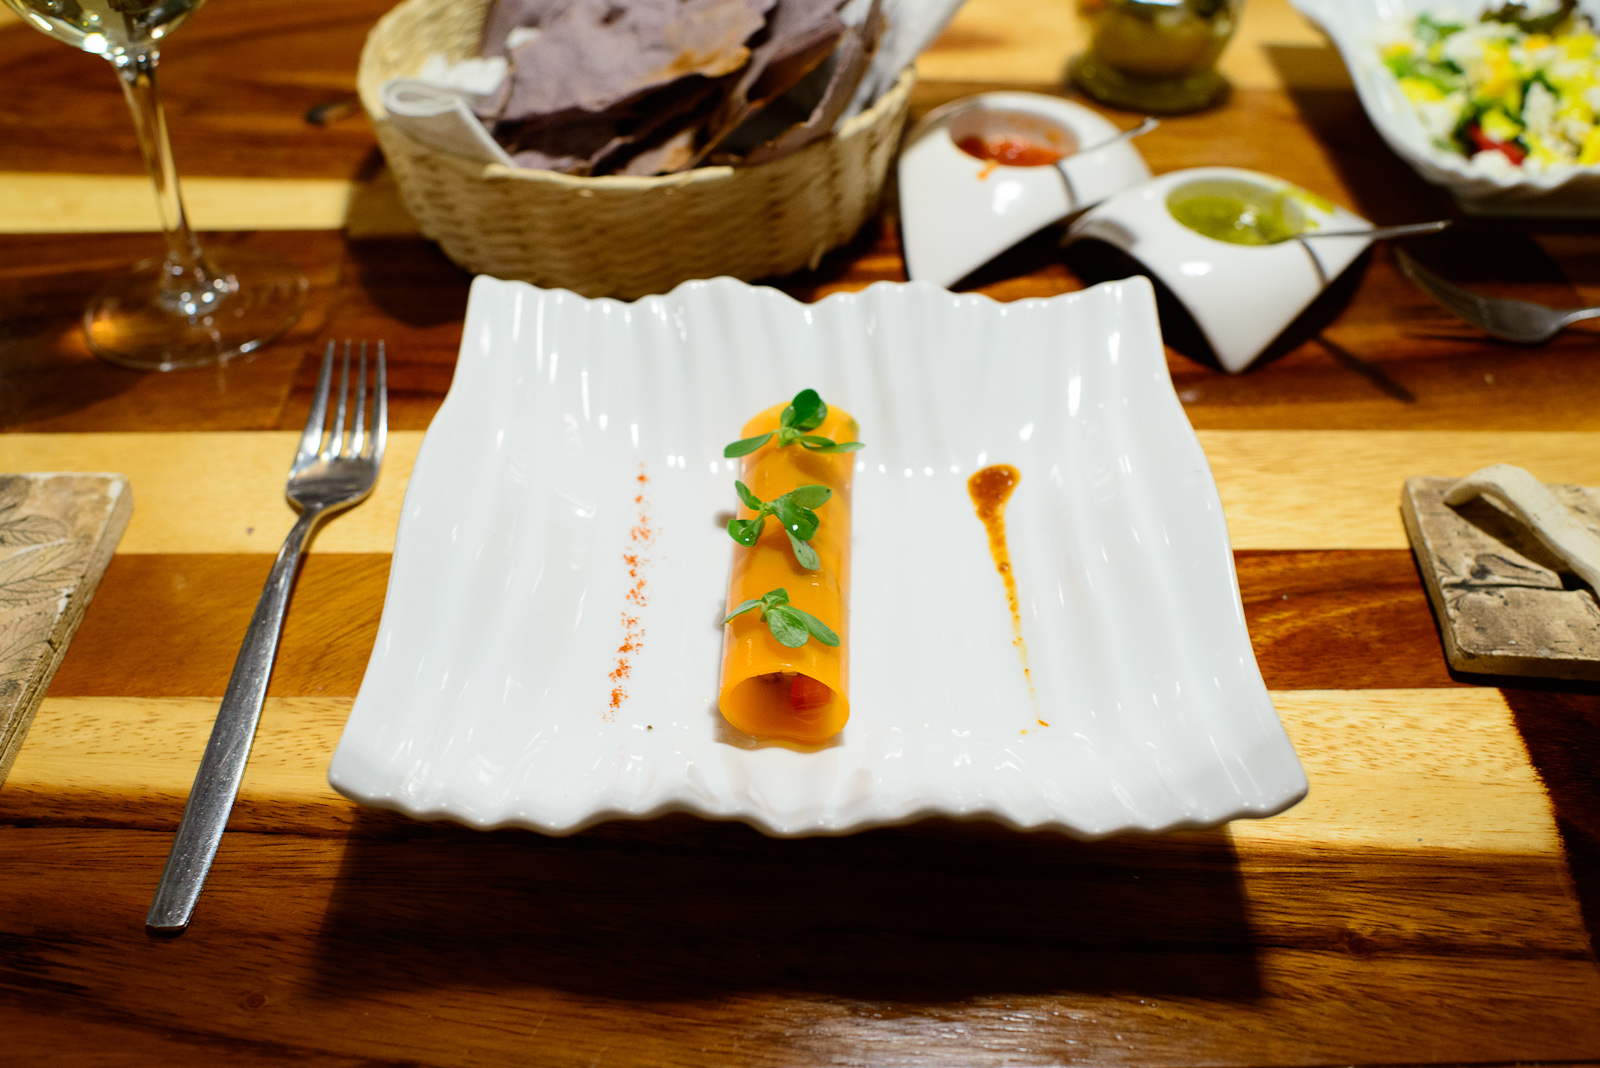 2nd Course: Carrot tacos - carrot sheets filled with shrimp cevi